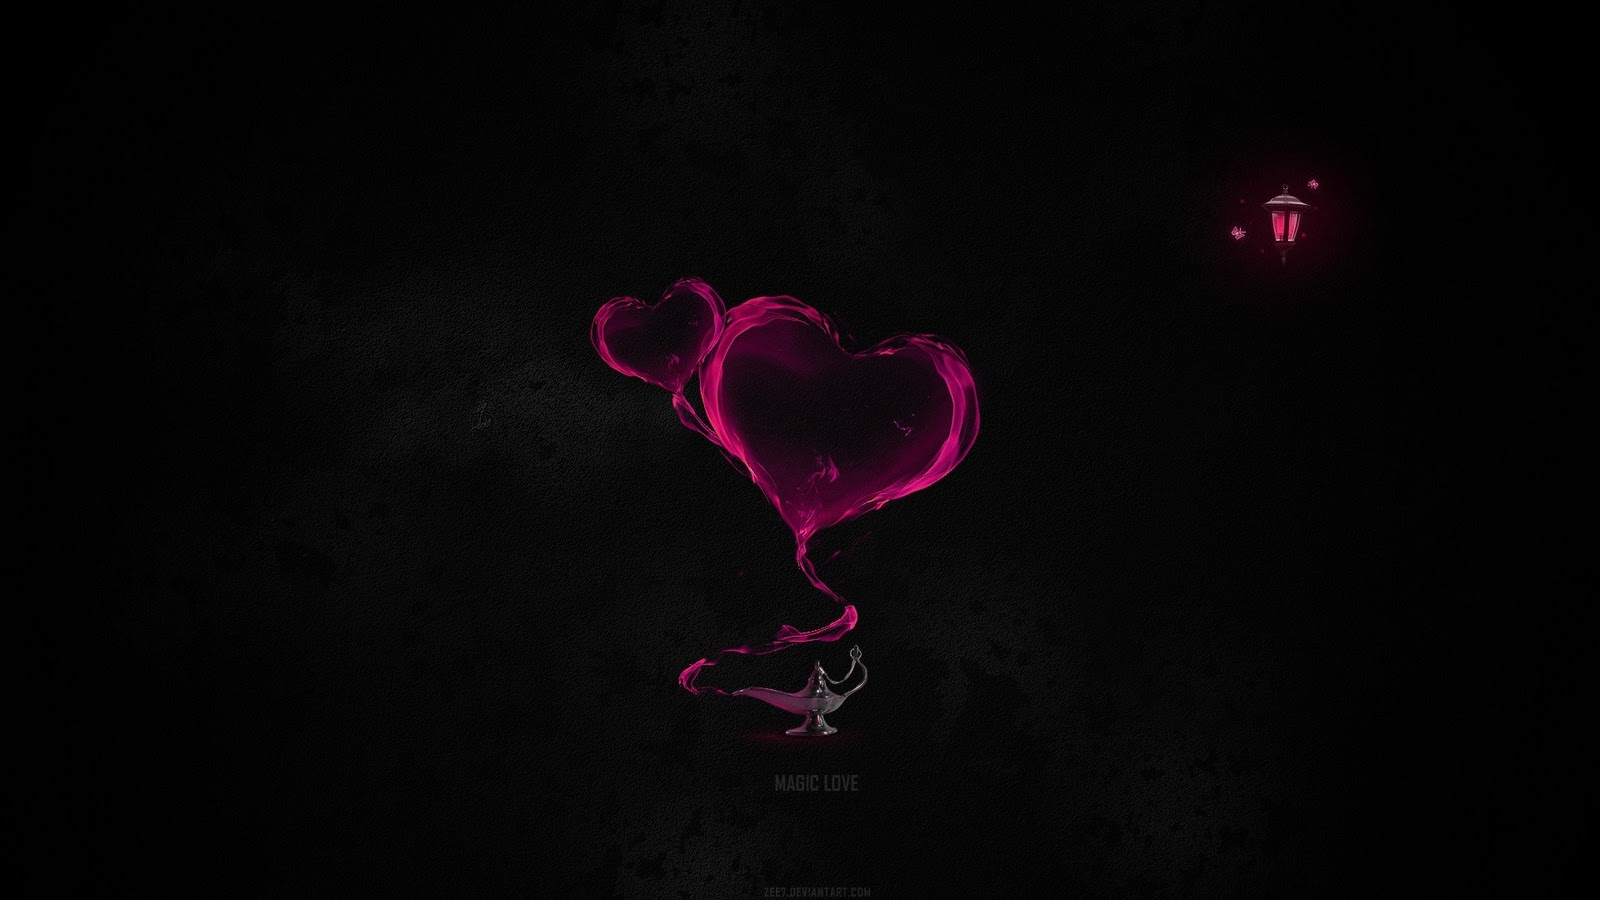 Love Wallpaper Status Hd : Free 3D Wallpapers Download: Love hd wallpaper, love ...